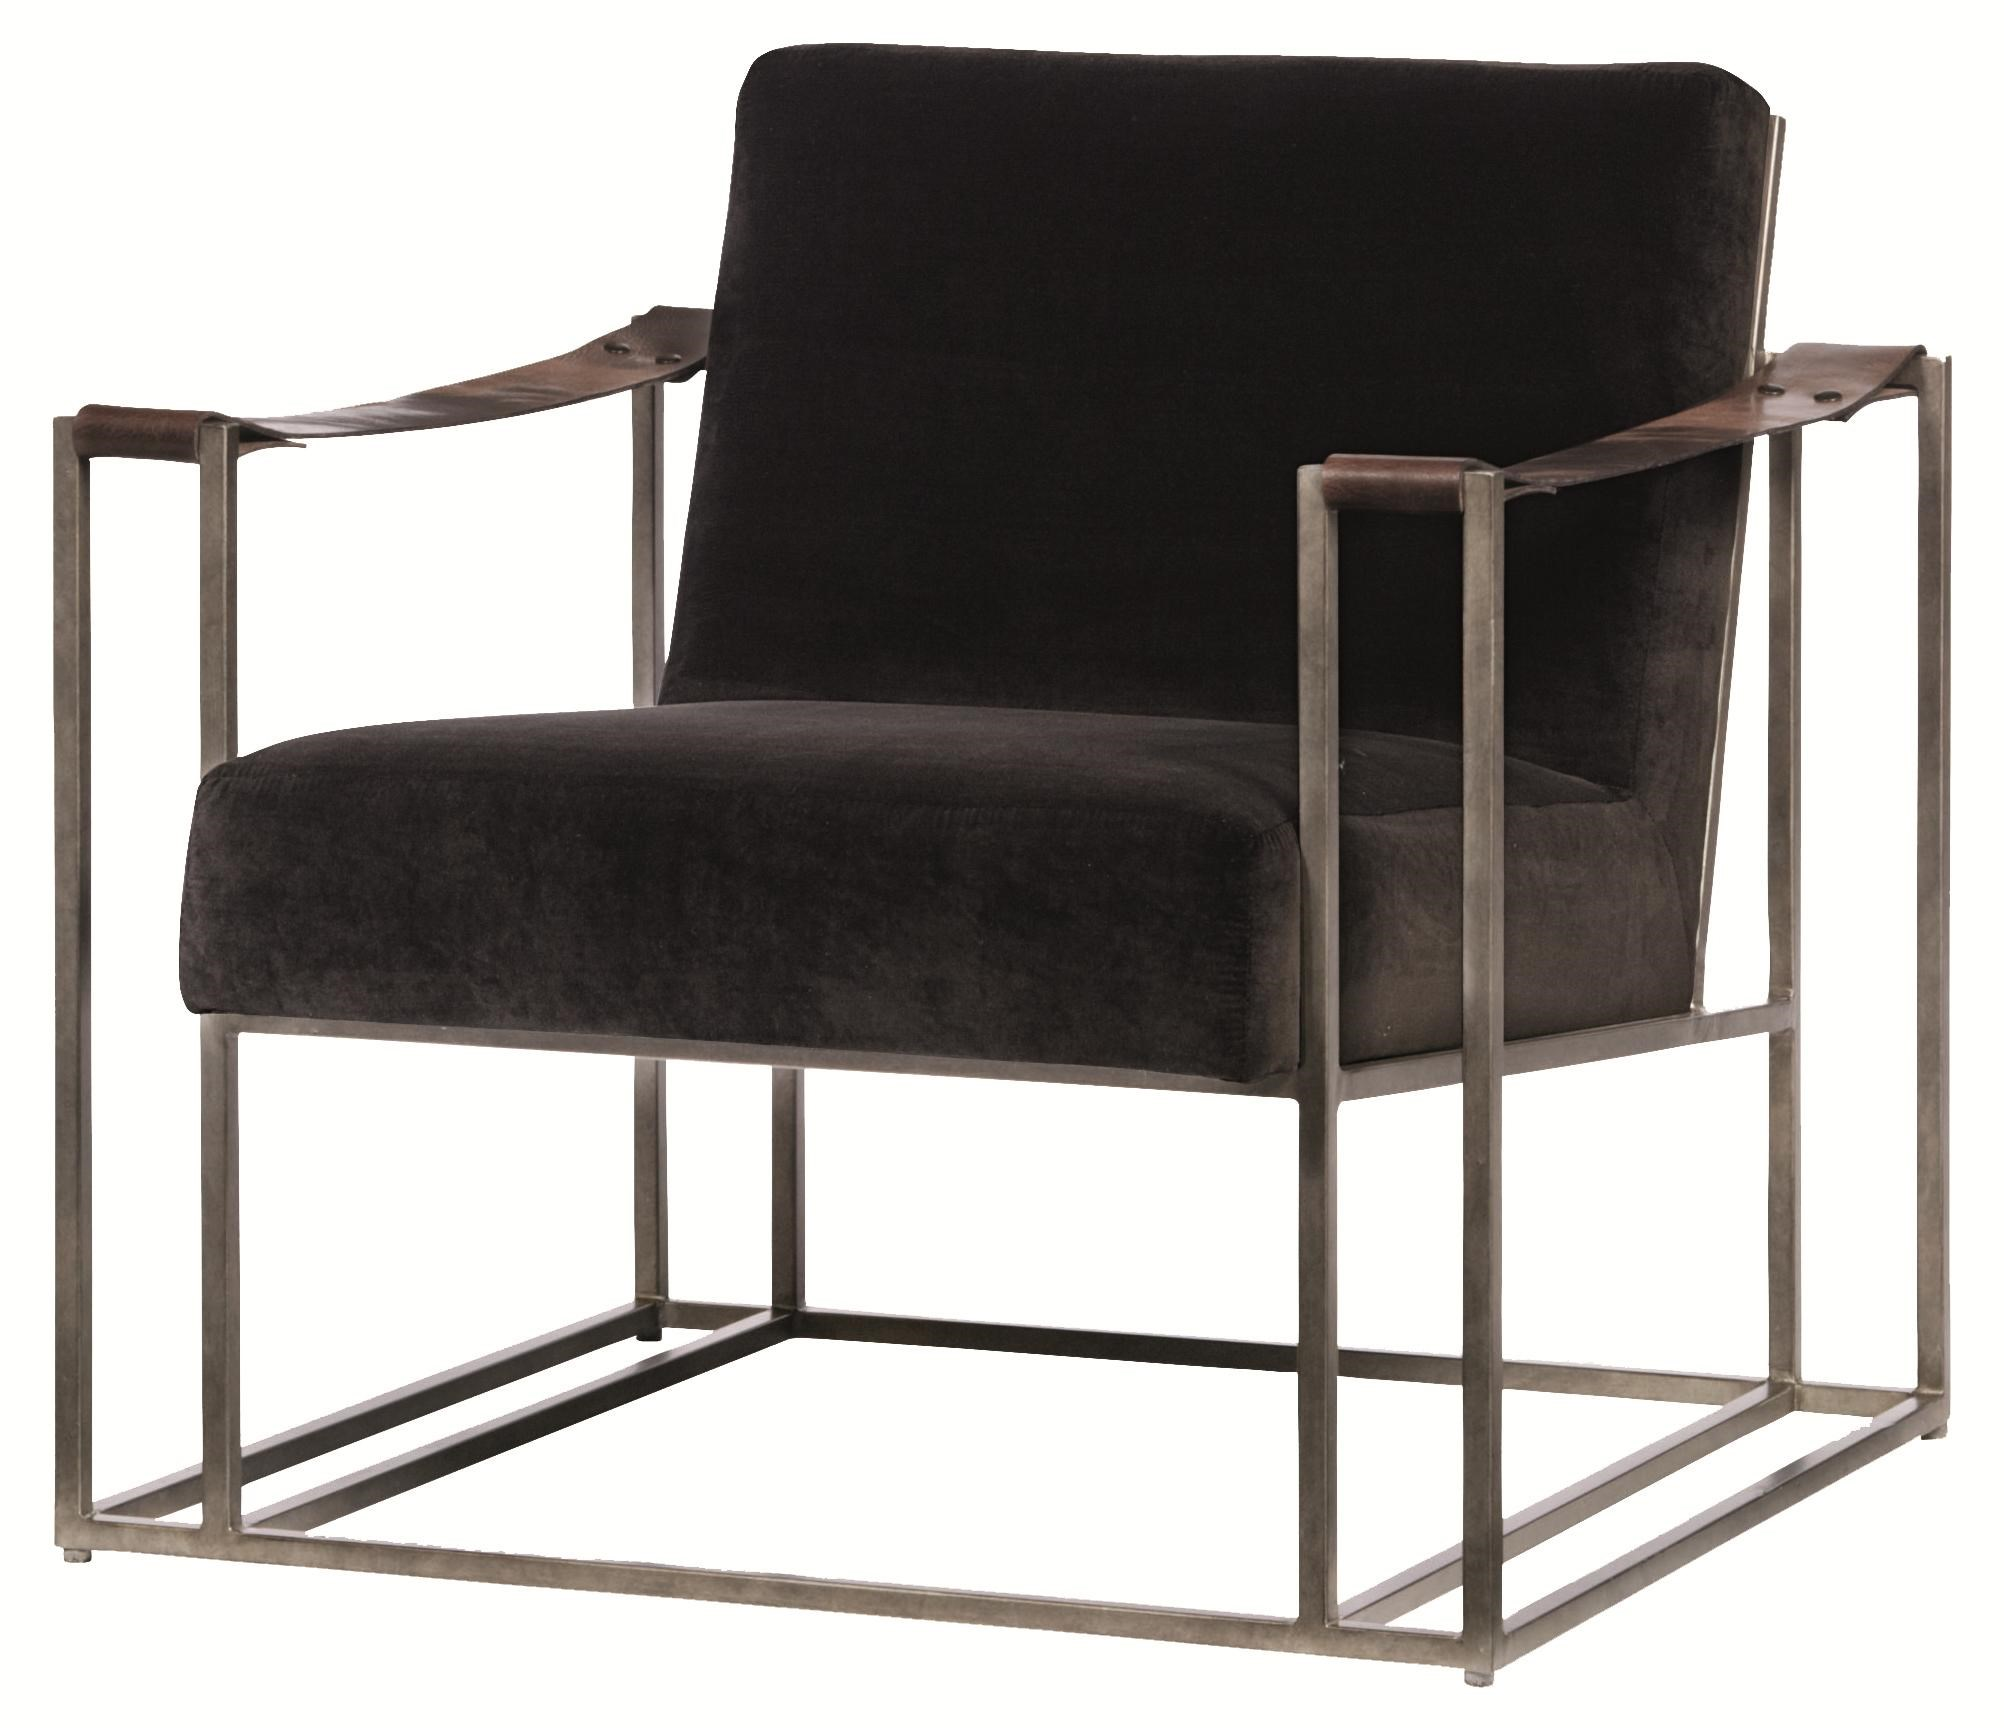 High End Accent Chair with Modern Style